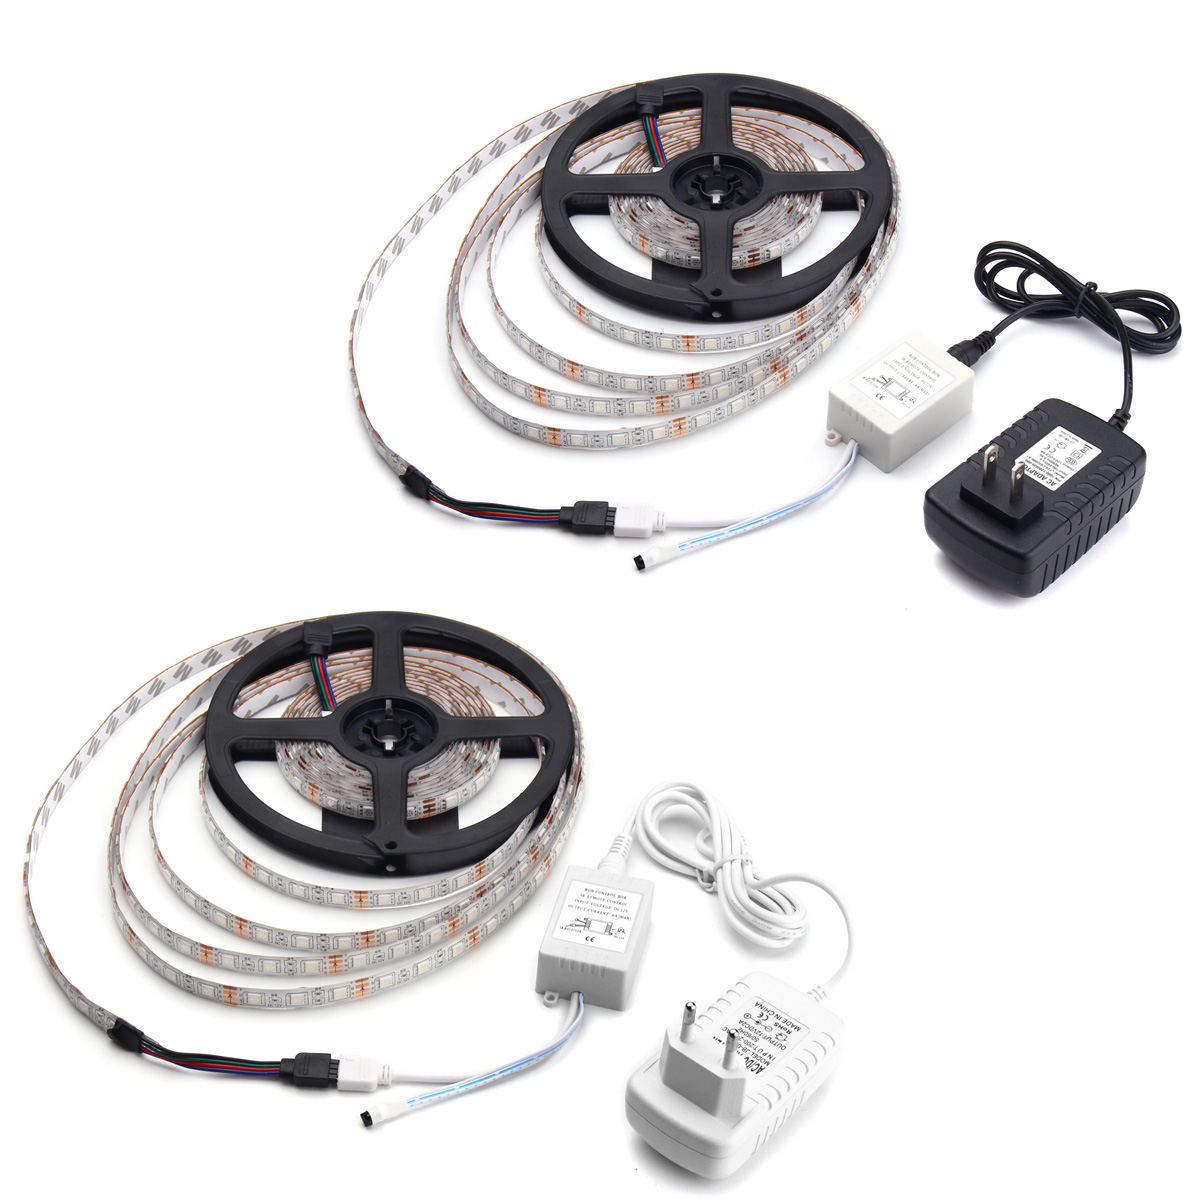 5m 60w Rgb Smd Waterproof 300 Led Strip Light 44 Key Remote 12v 2a Power A